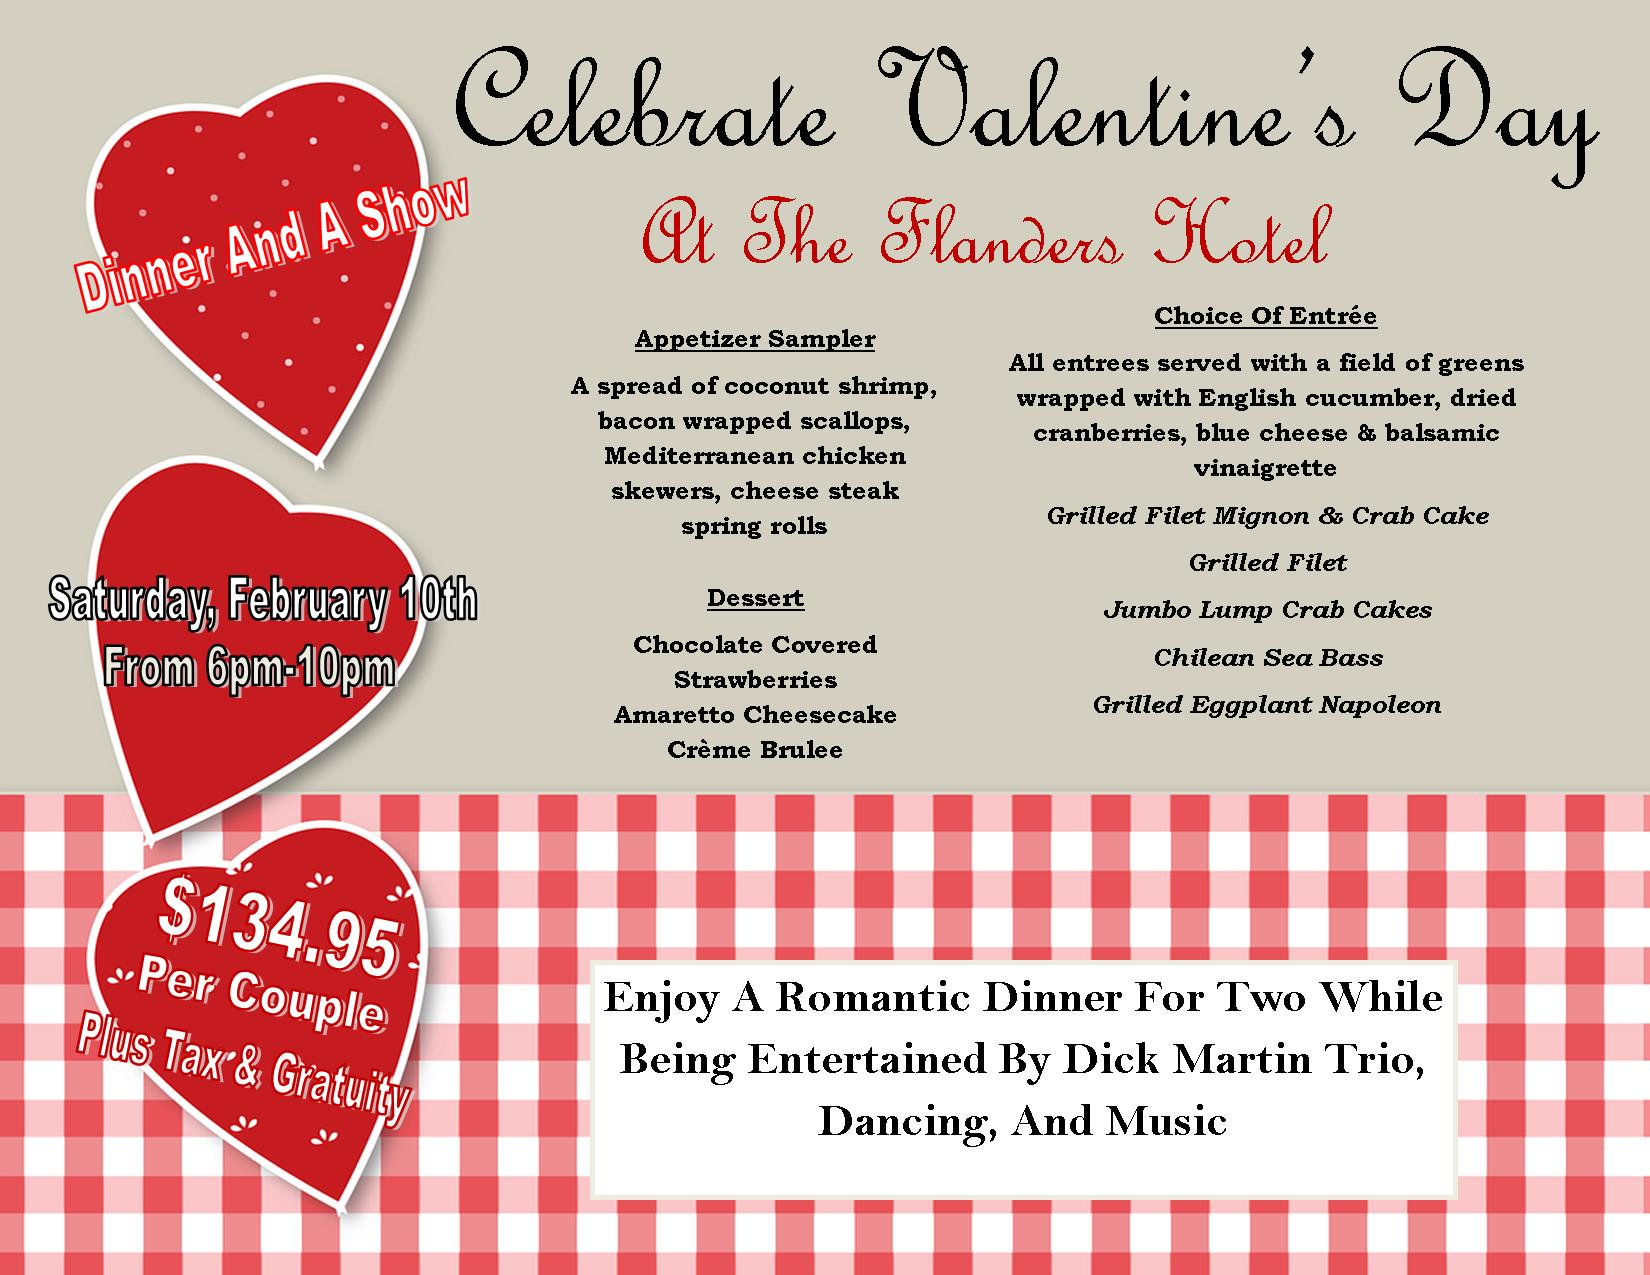 save with specials packages the flanders hotel valentine